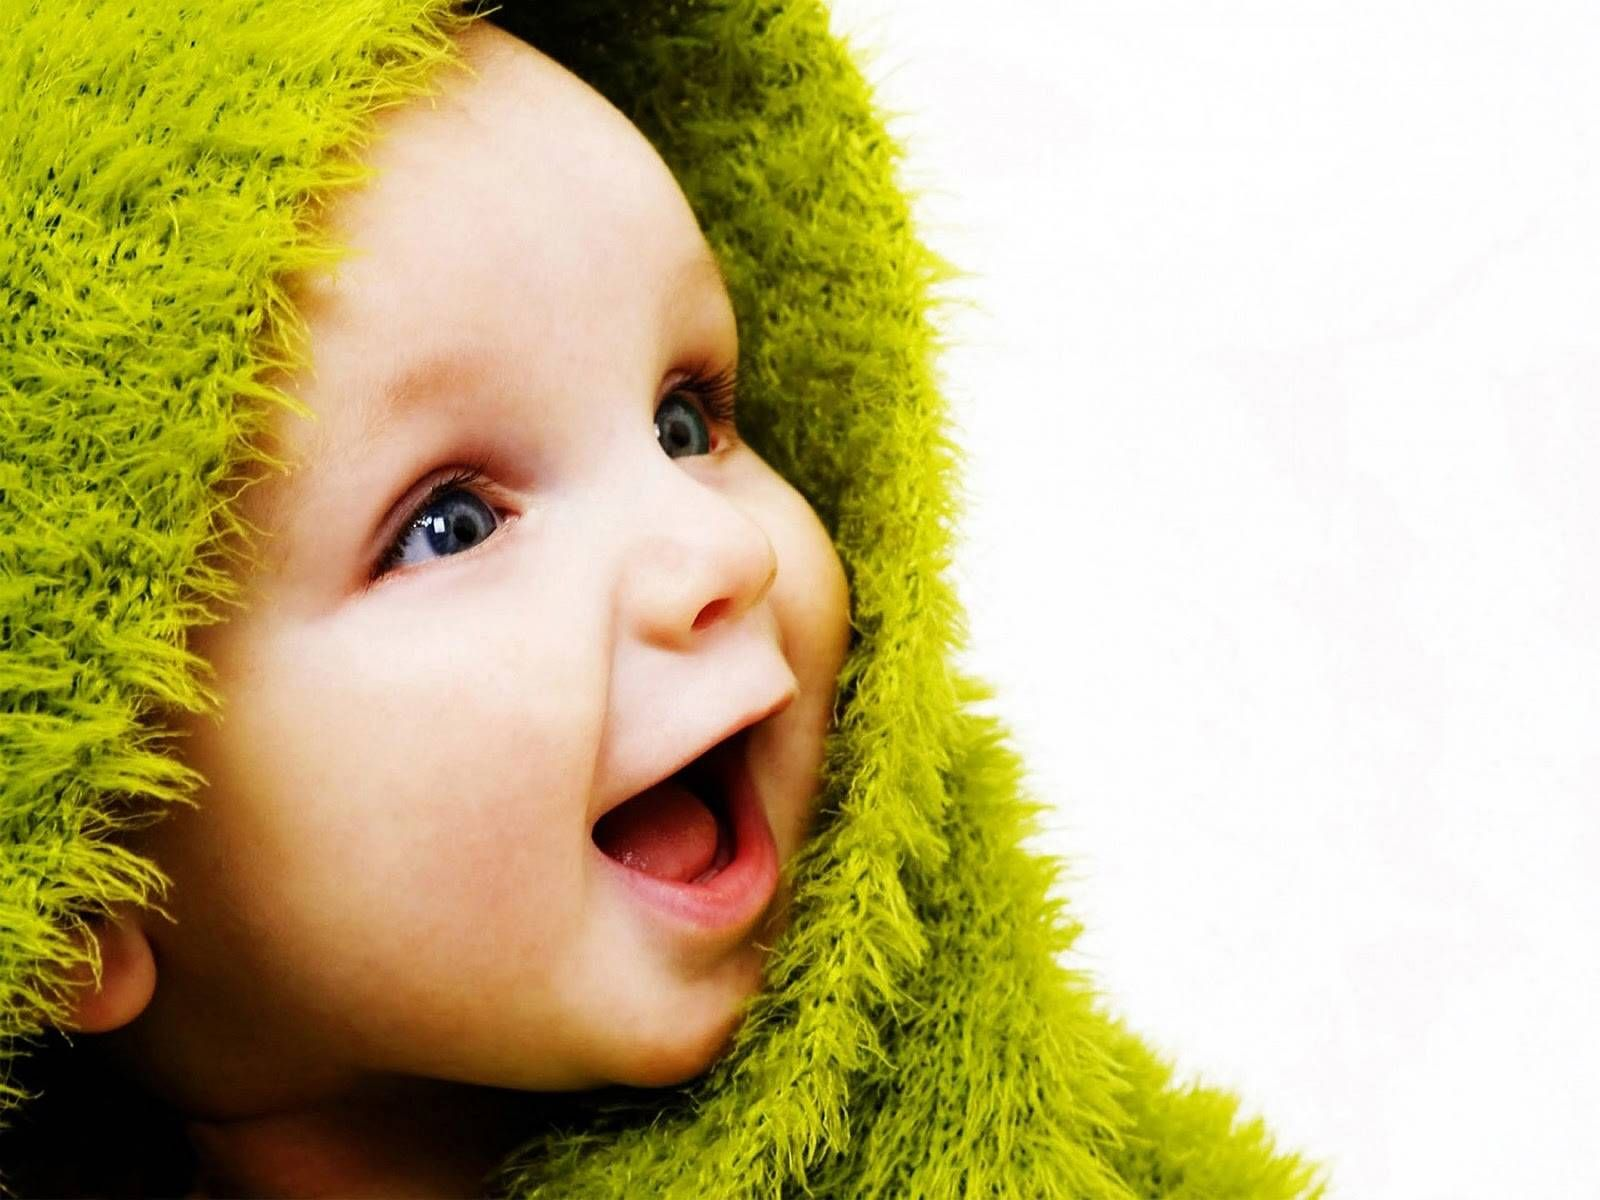 109312-cute-baby-laughing-baby-with-a-green-fluffy-towel (1600